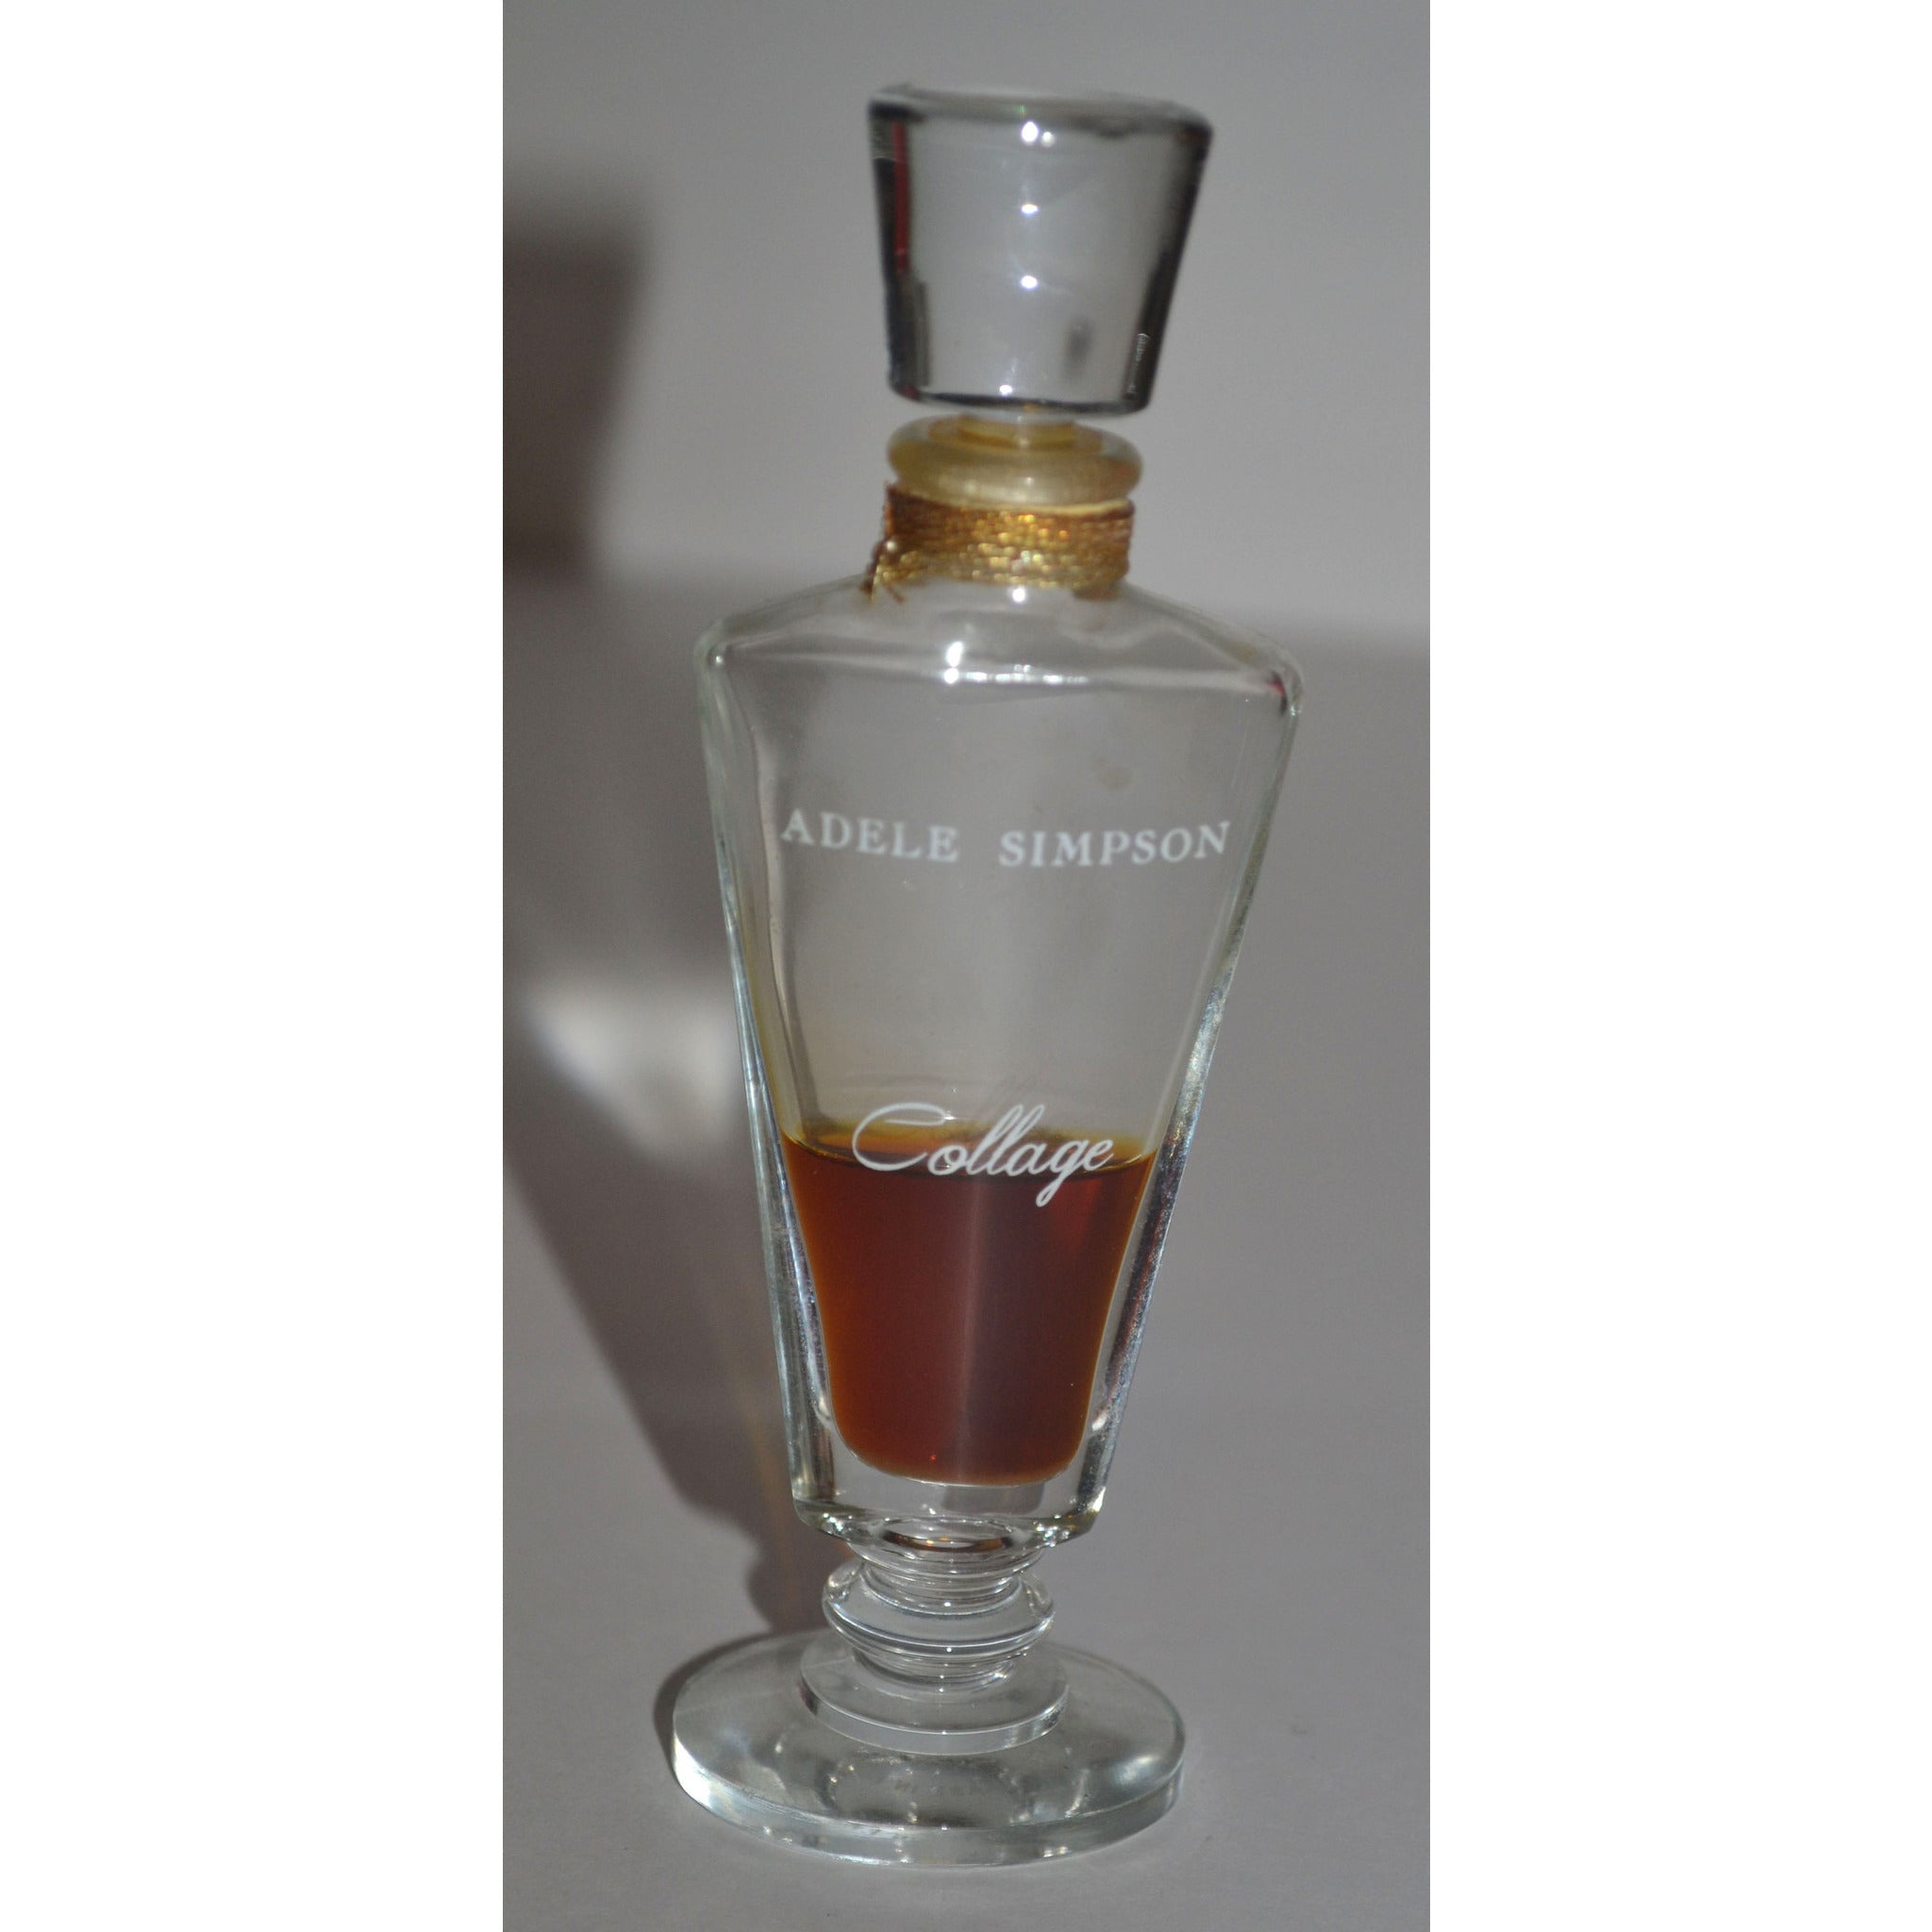 Vintage Adele Simpson Collage Perfume